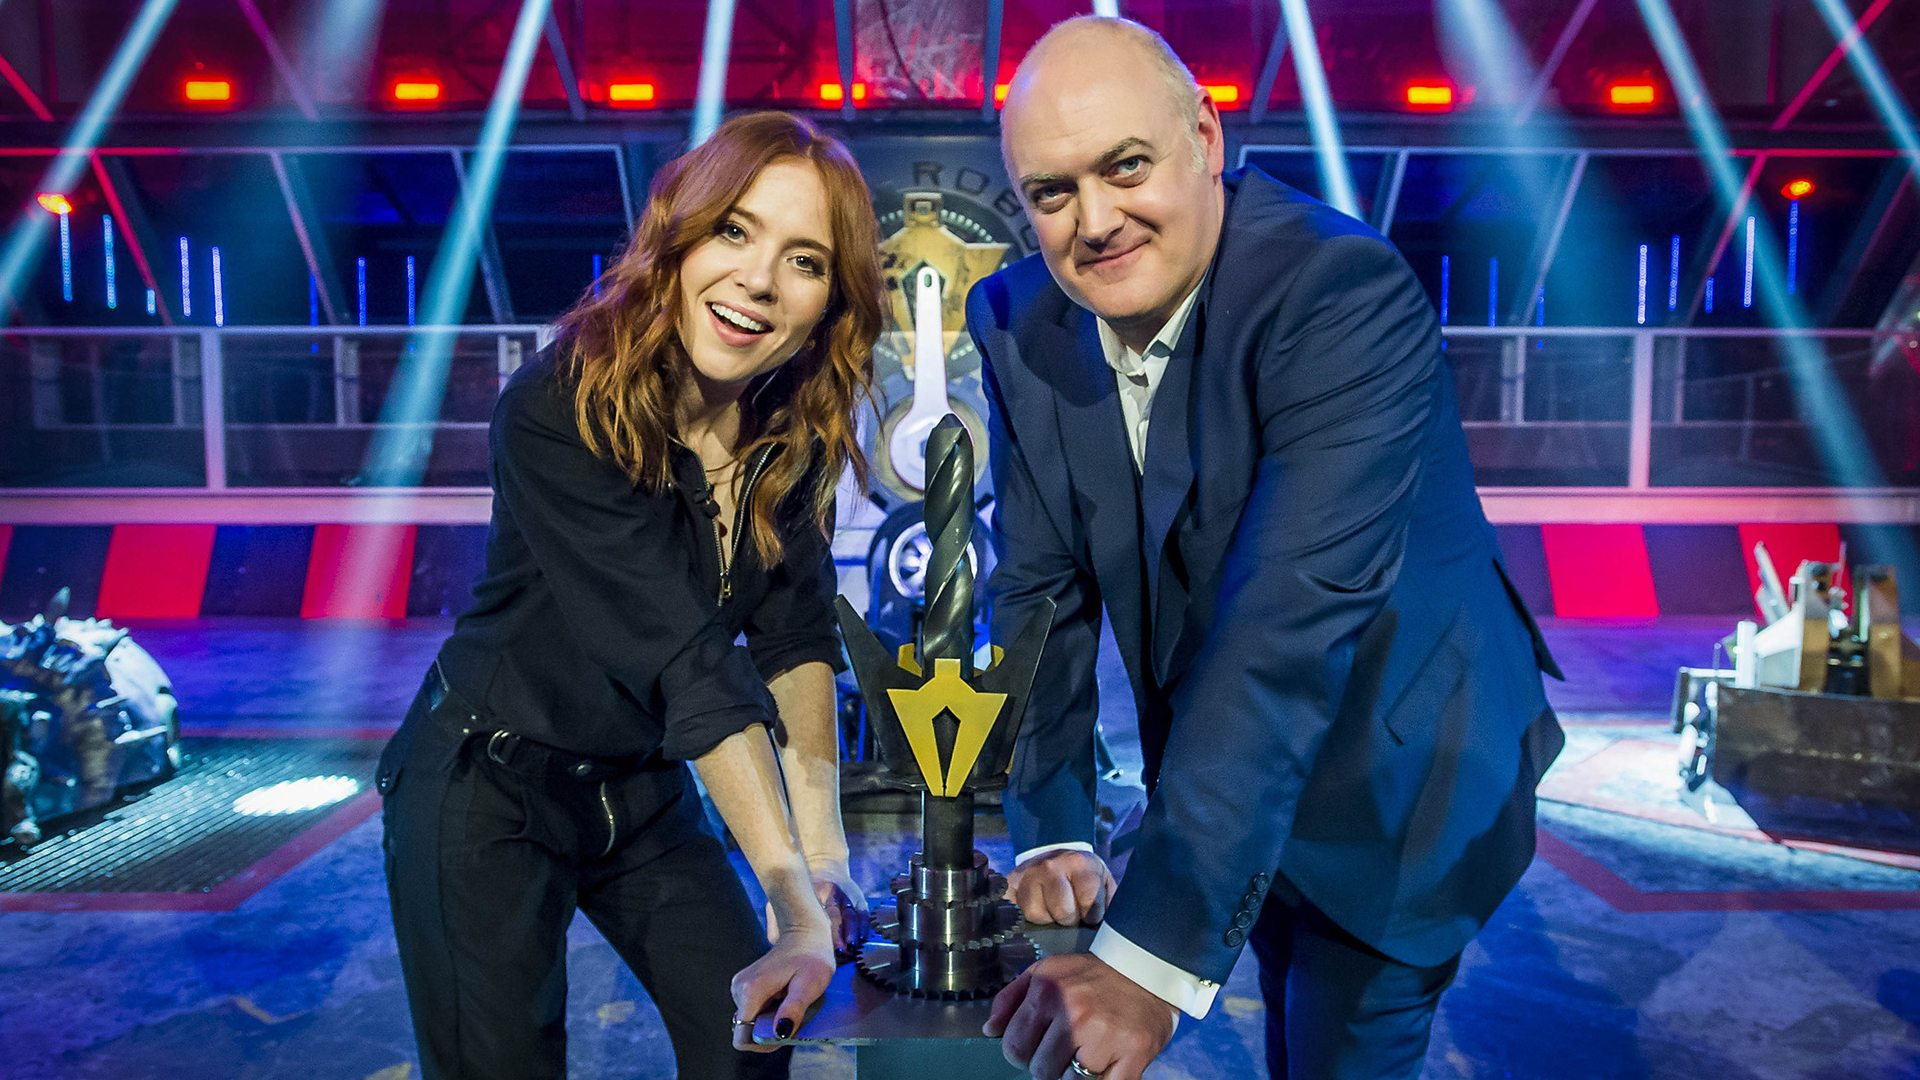 BBC - Make It Digital - Create, tinker and compete with Robot Wars